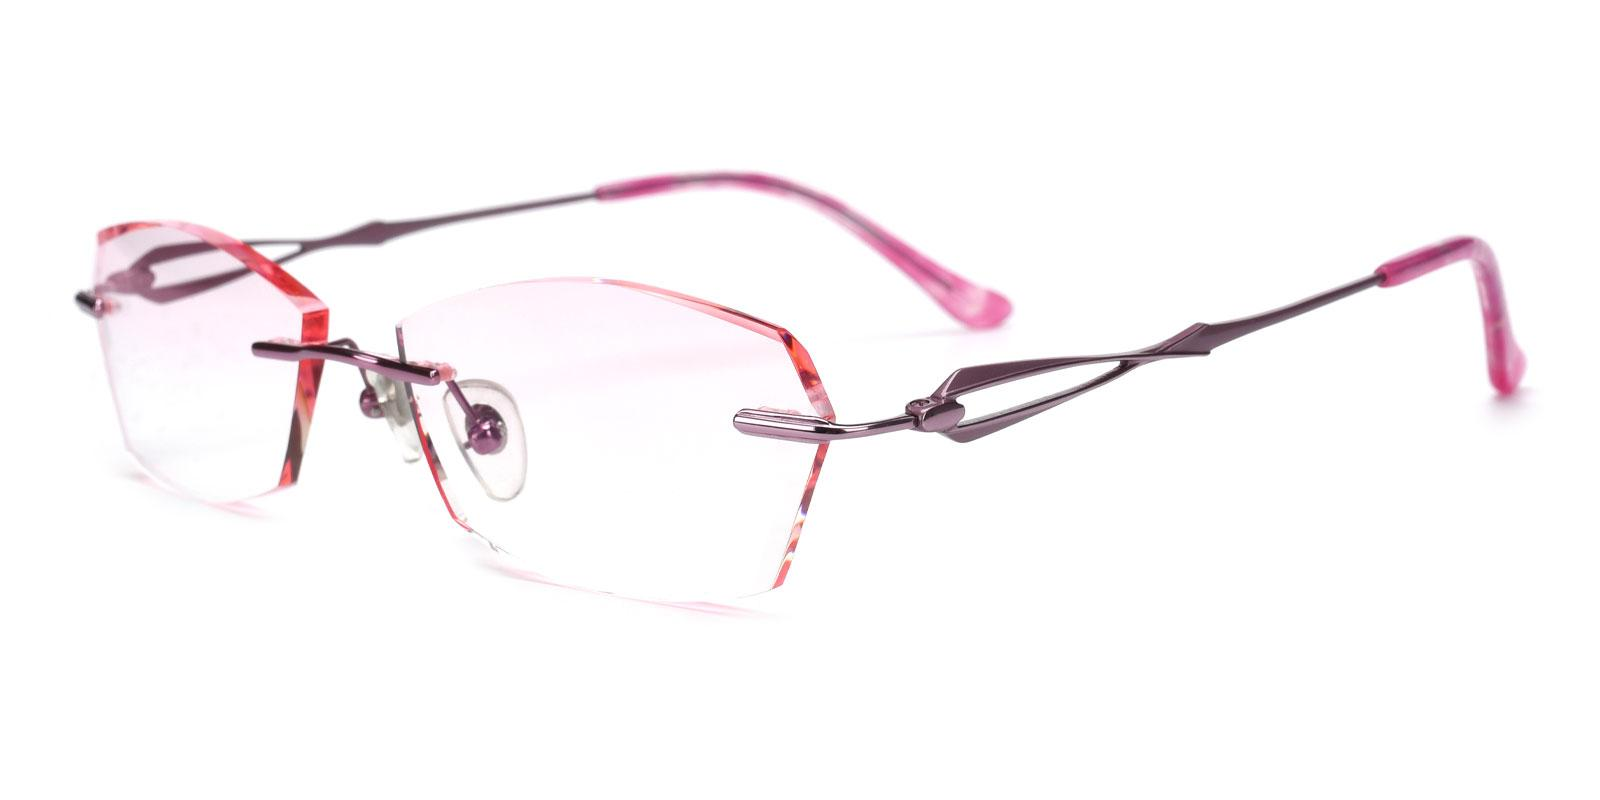 Linden-Pink-Varieties-Titanium-Eyeglasses-additional1